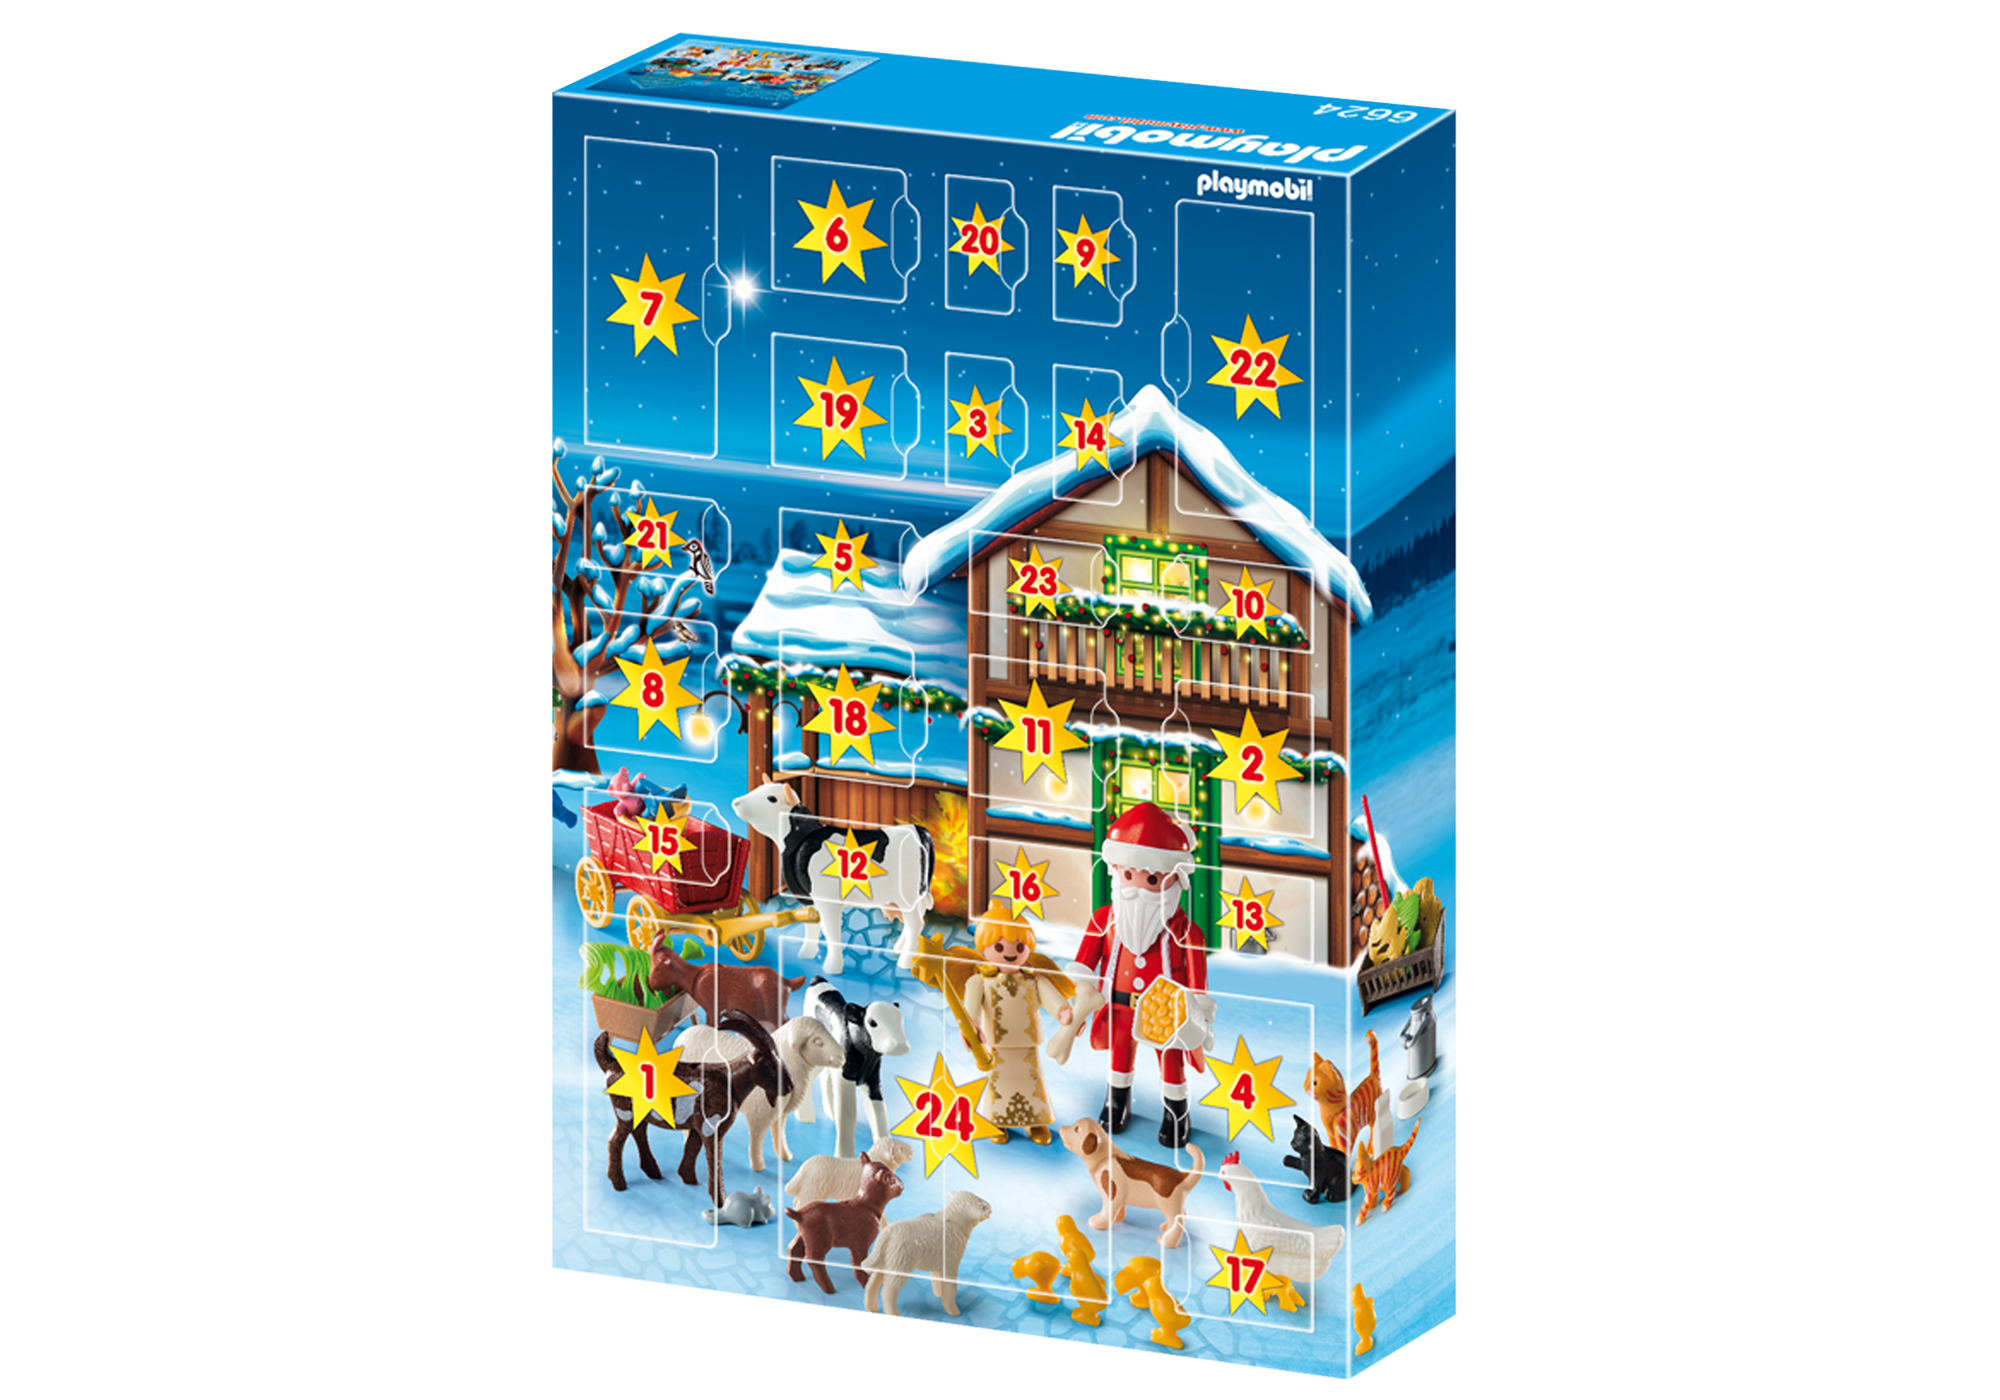 http://media.playmobil.com/i/playmobil/6624_product_extra2